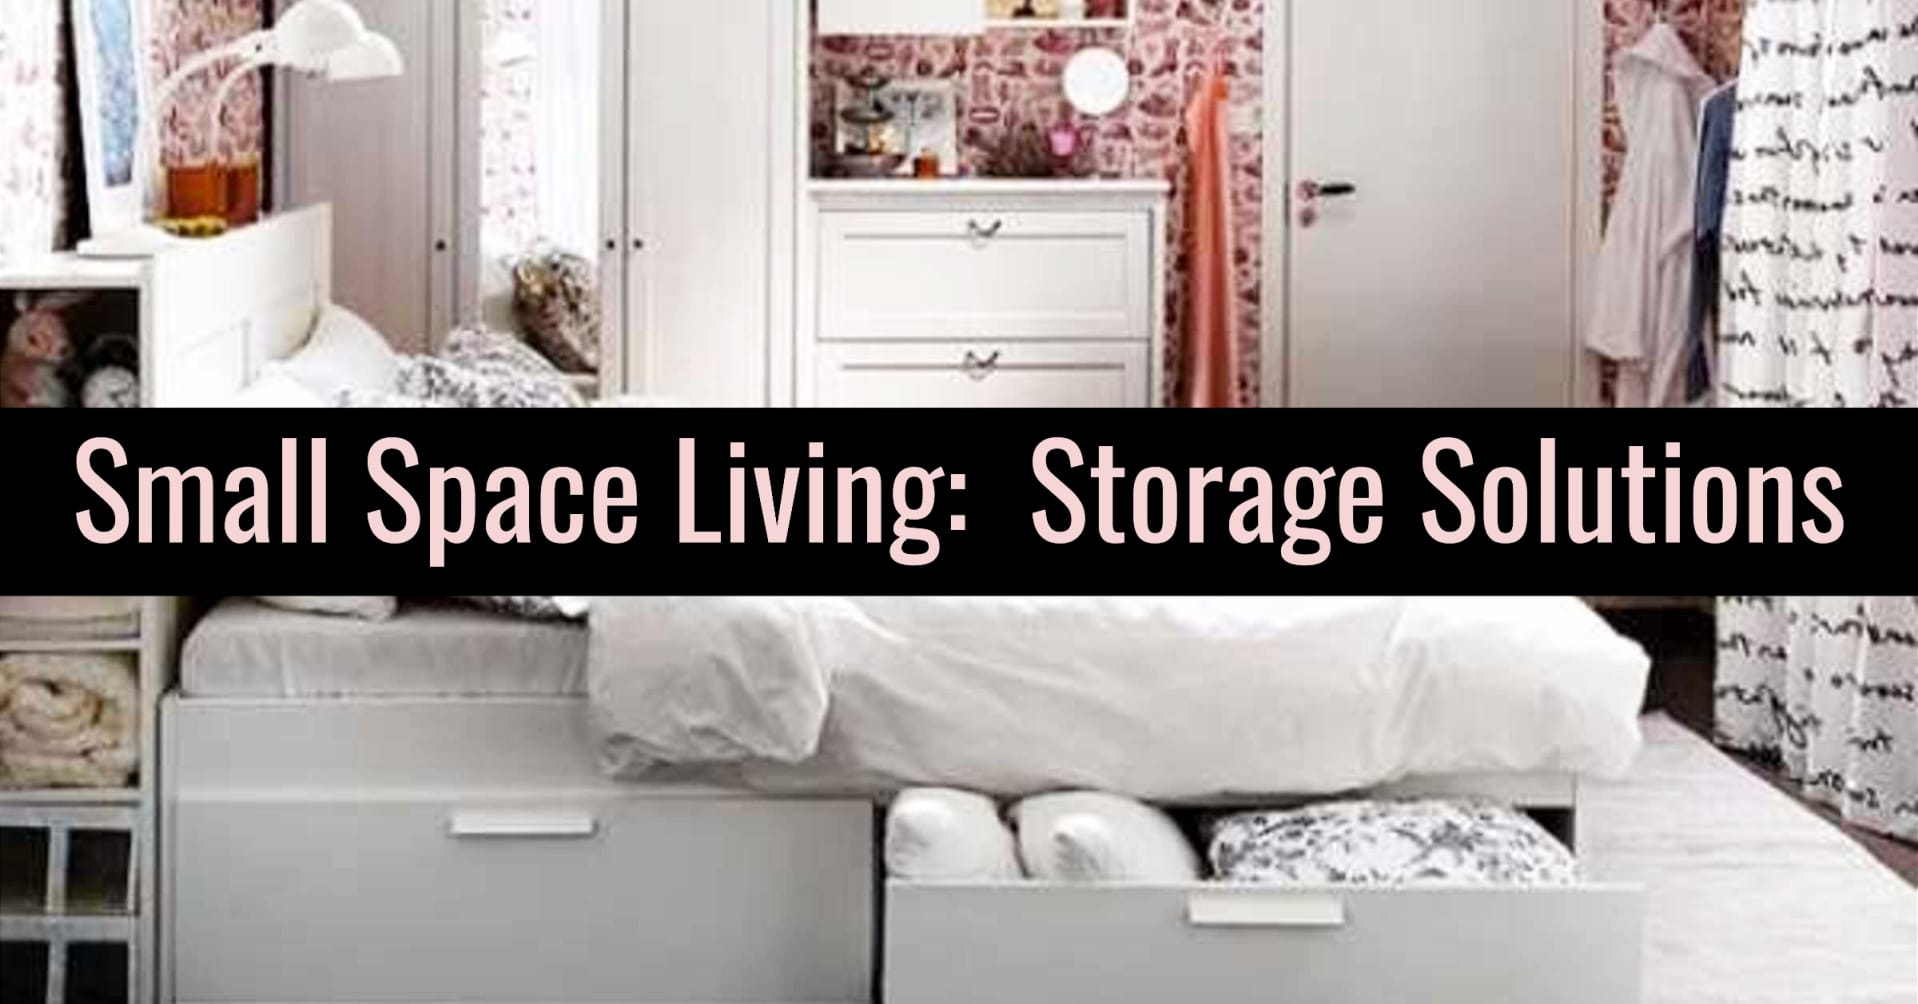 Small Space Living Storage Solutions!  Storage and organization hacks for getting organized at home on a budget - Get organized at home with these creative storage solutions for small spaces in your bedroom, tiny apartment, little flat, small kitchen, living room, bathroom and more for making the most of small spaces for serious clutter control.  Go from cluttered mess to organized success when uncluttering your home!